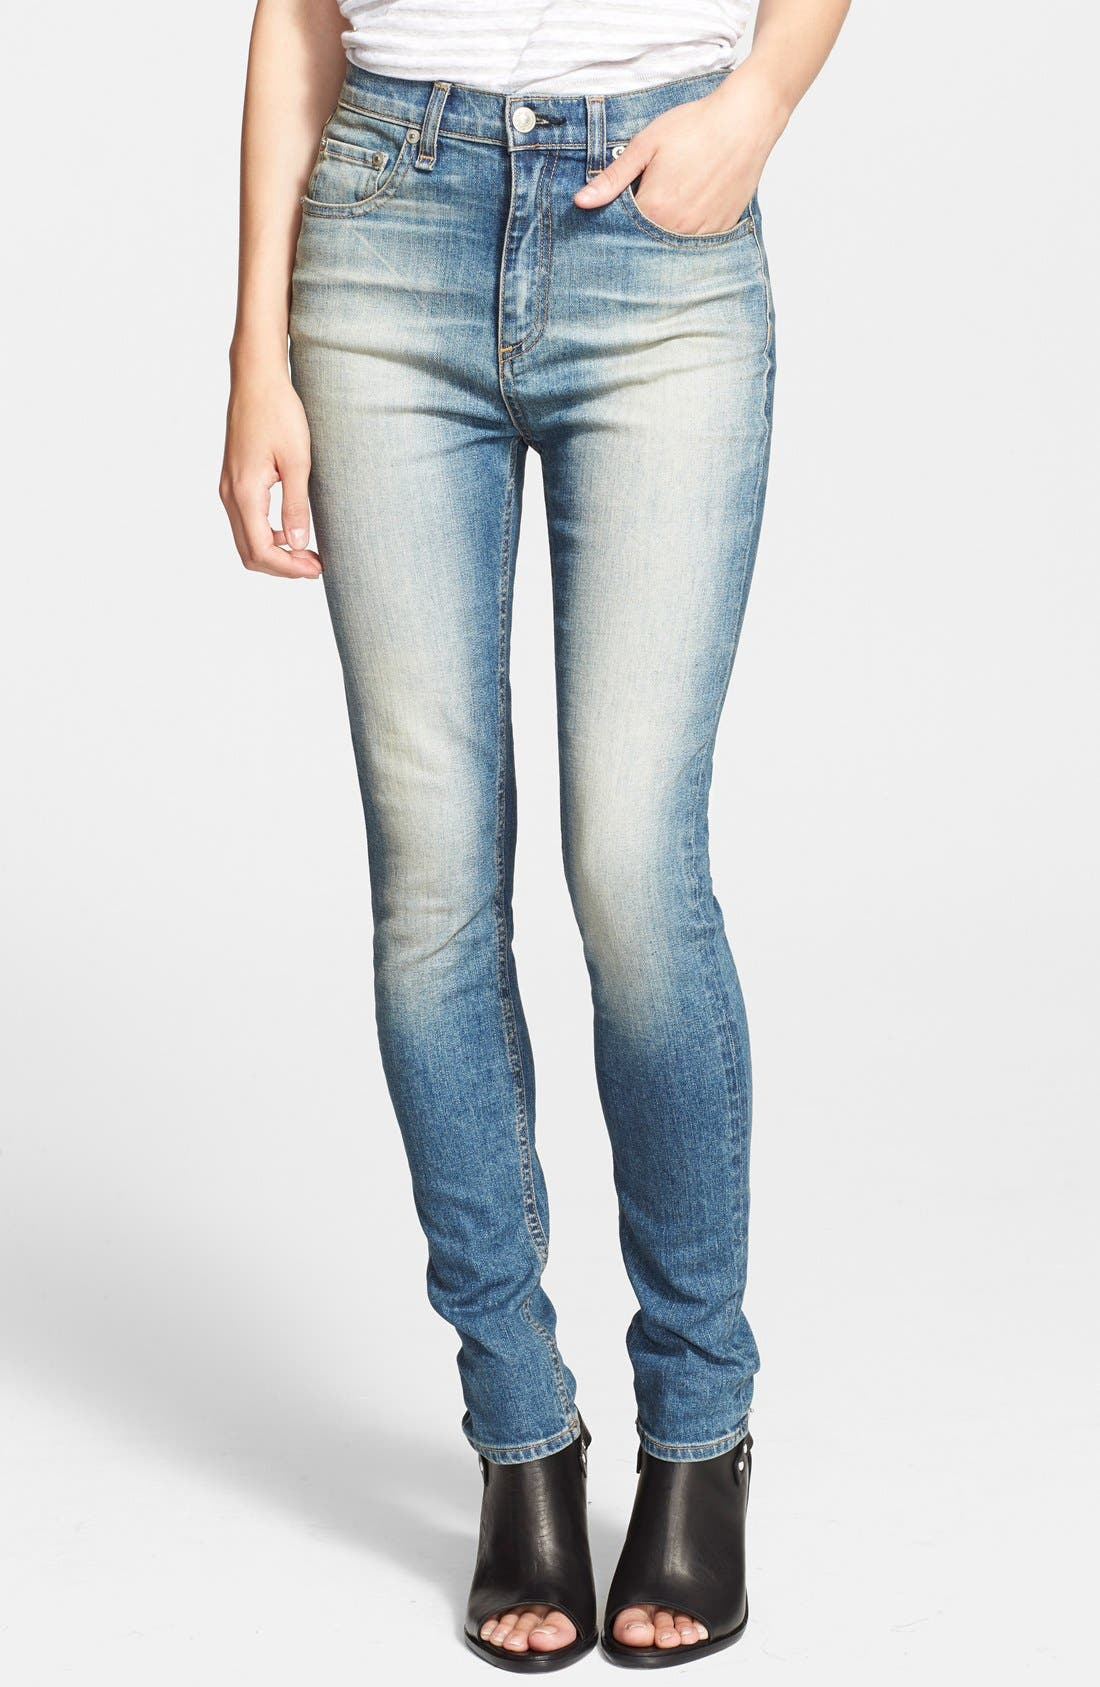 Alternate Image 1 Selected - rag & bone/JEAN 'The Justine' High Rise Jeans (Surf)